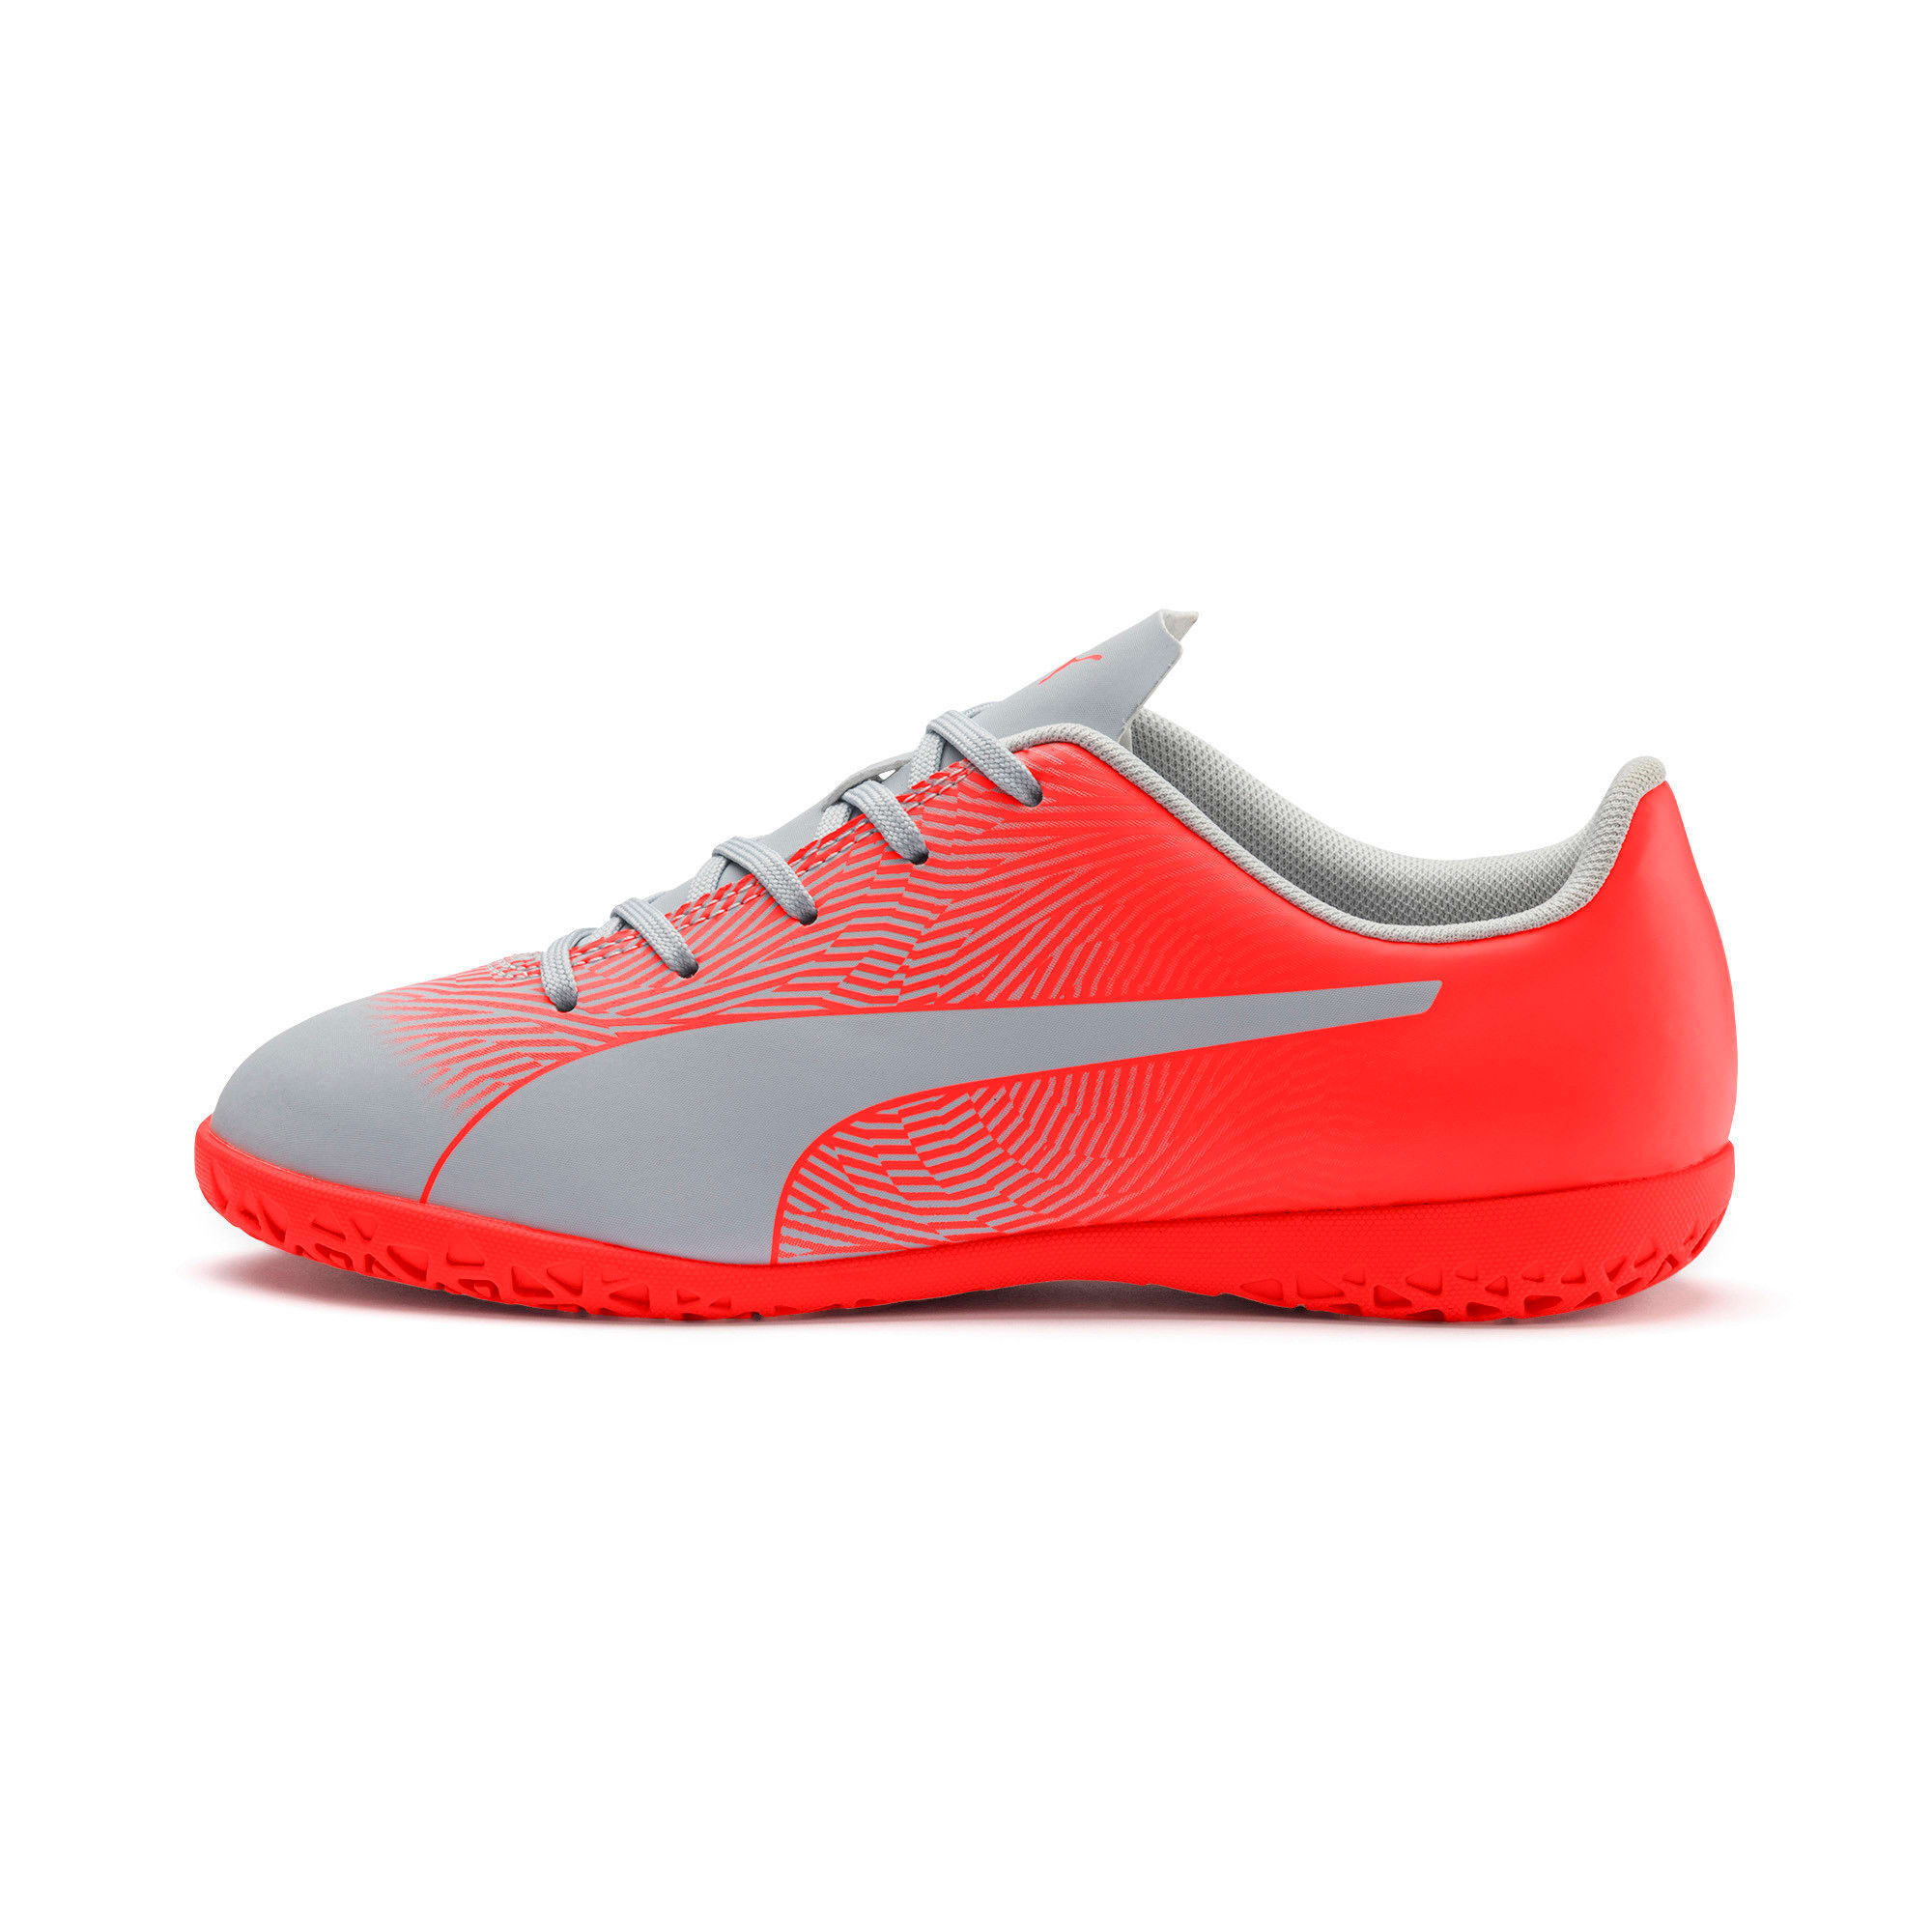 Thumbnail 1 of PUMA Spirit II IT Youth Football Boots, Glacial Blue-Nrgy Red, medium-IND